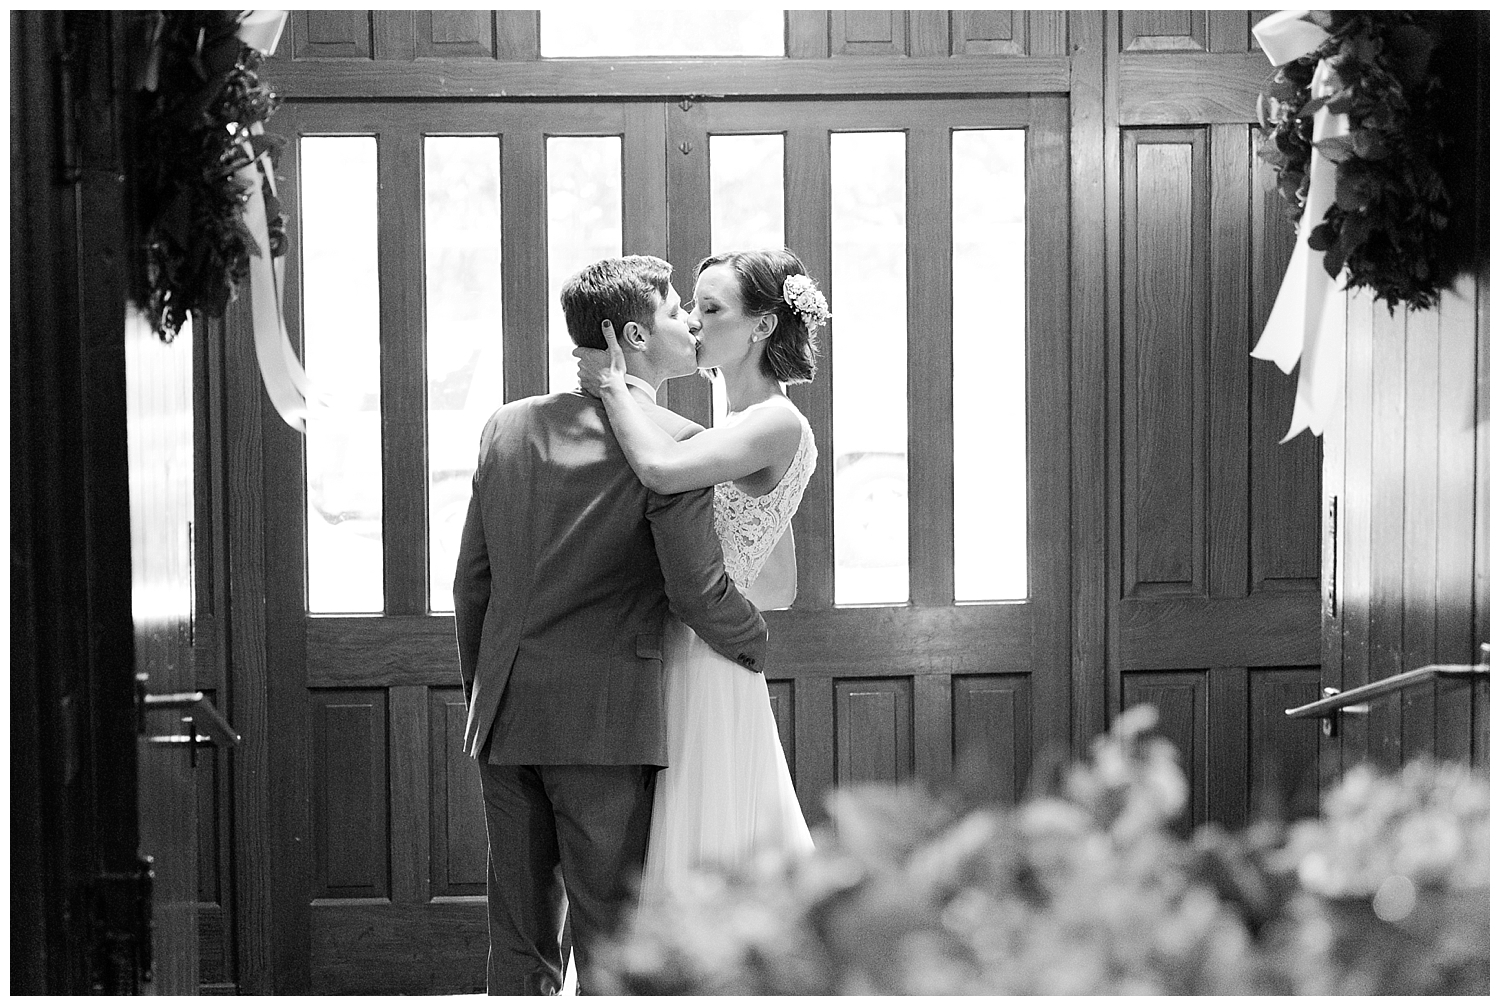 As soon as they got past the doors leading in to the sanctuary, these two shared the sweetest kiss!